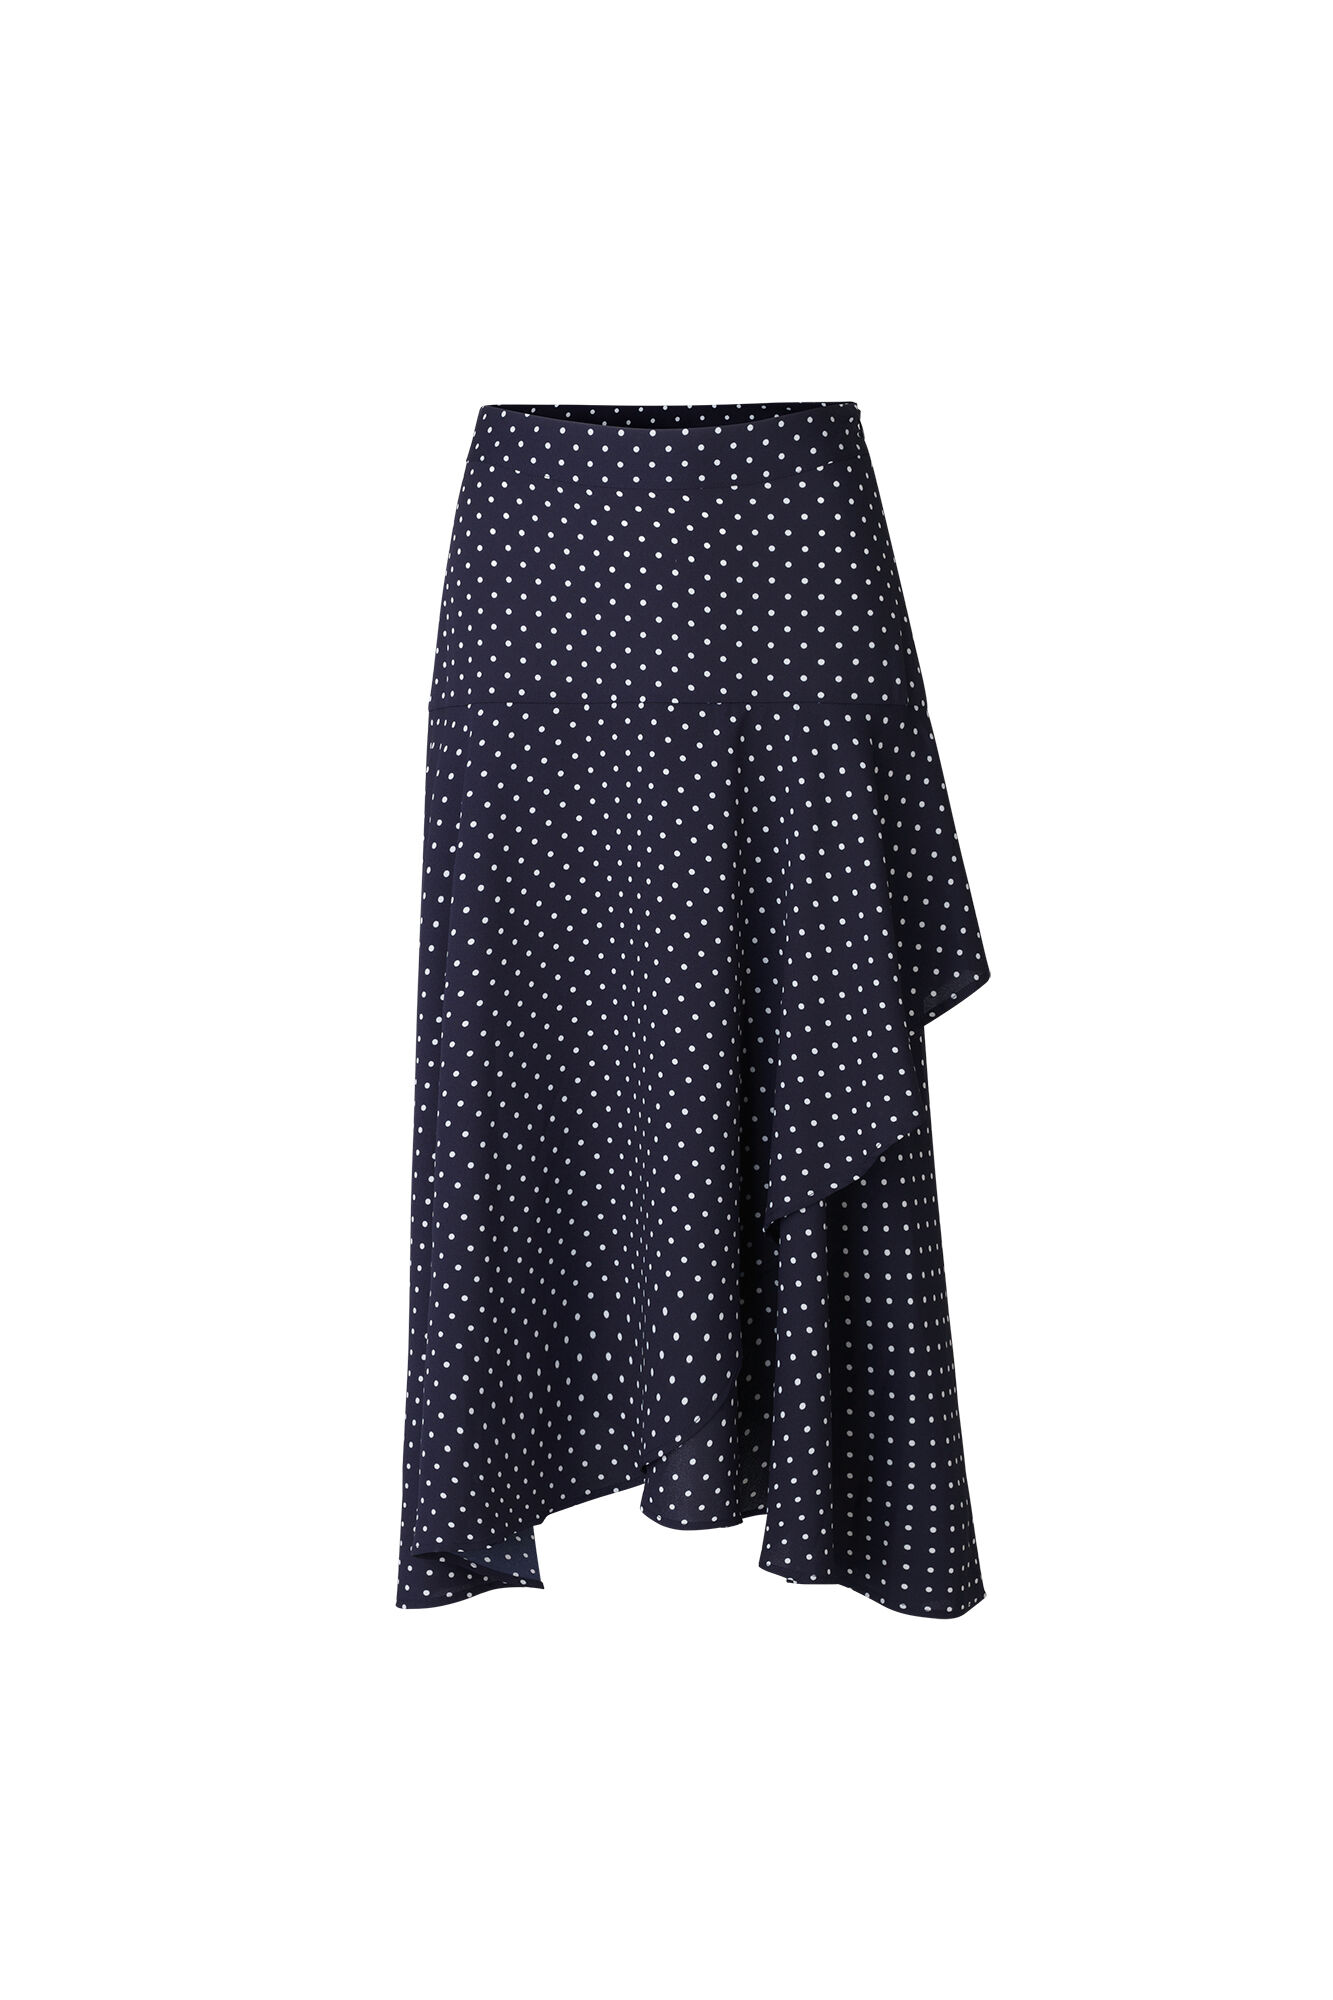 ENGUM SKIRT AOP 6508, NAVY DOT SMALL